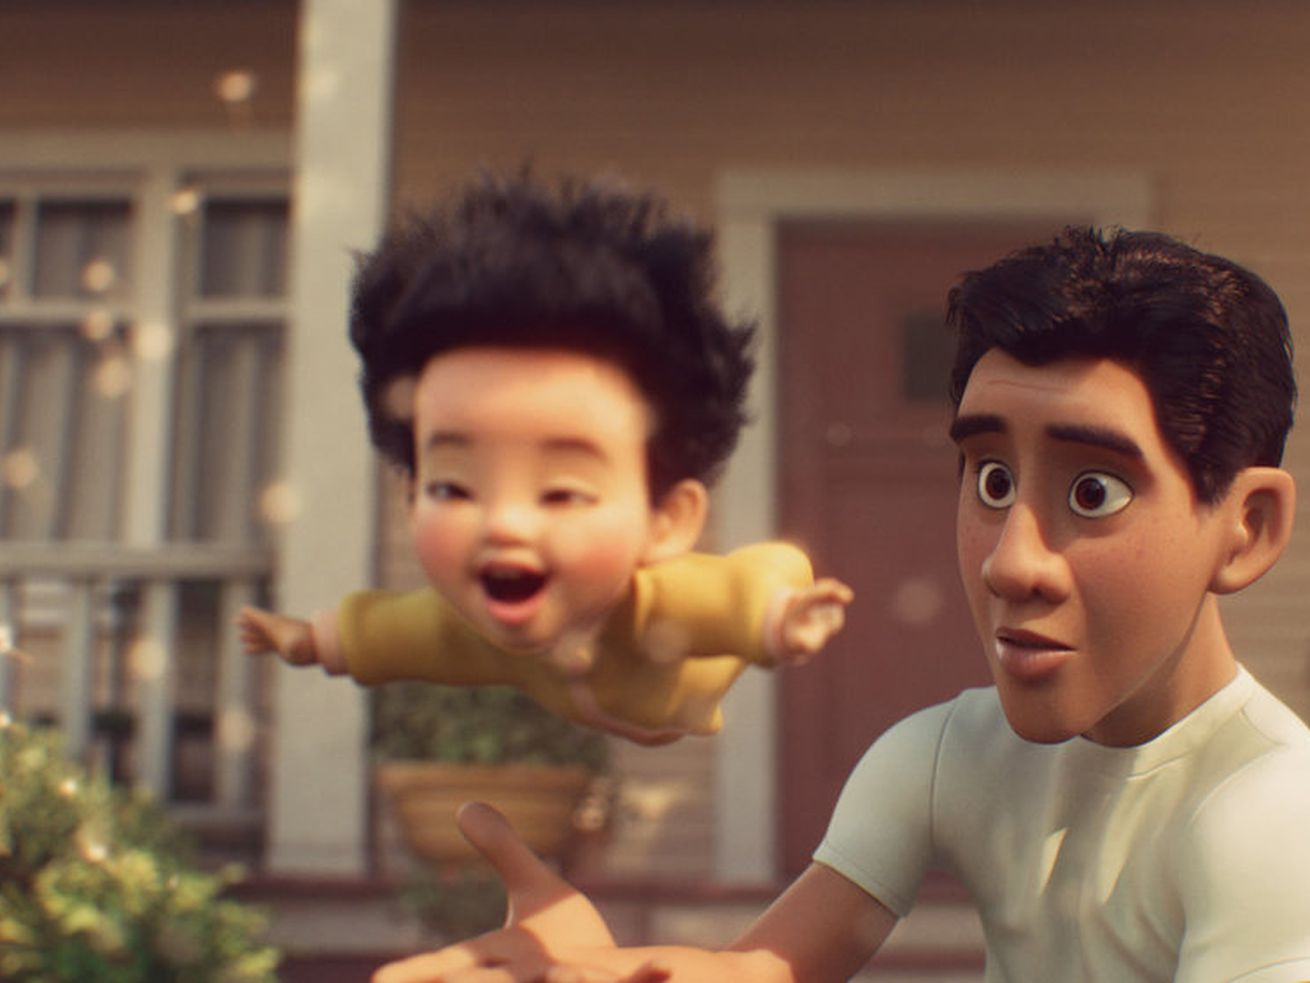 """In a screenshot from the animated short film """"Float,"""" the father watches his young son float through the air."""